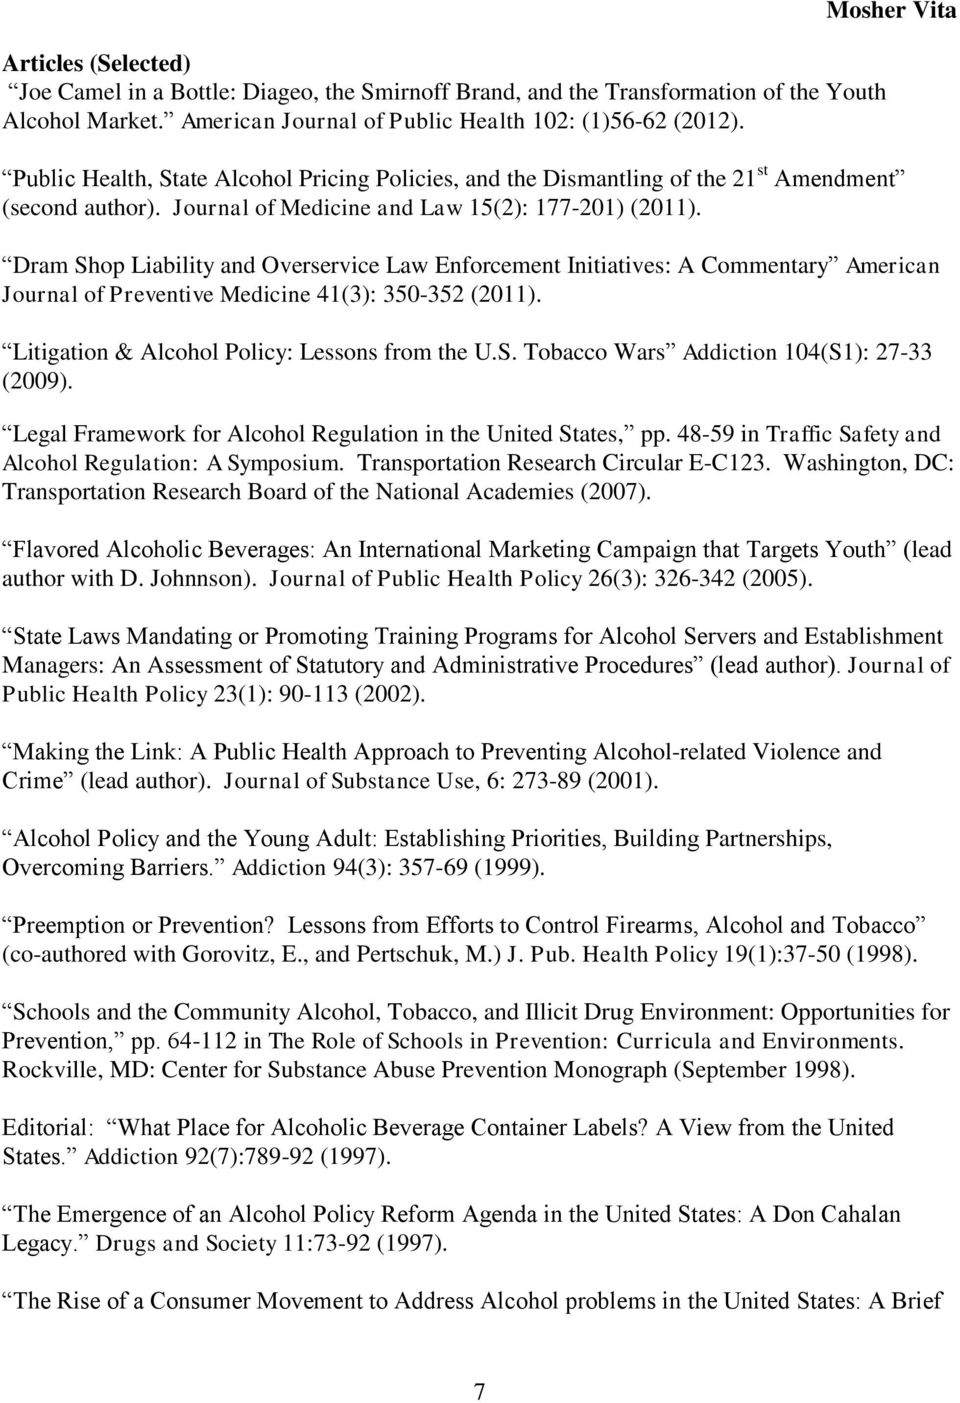 Dram Shop Liability and Overservice Law Enforcement Initiatives: A Commentary American Journal of Preventive Medicine 41(3): 350-352 (2011). Litigation & Alcohol Policy: Lessons from the U.S. Tobacco Wars Addiction 104(S1): 27-33 (2009).